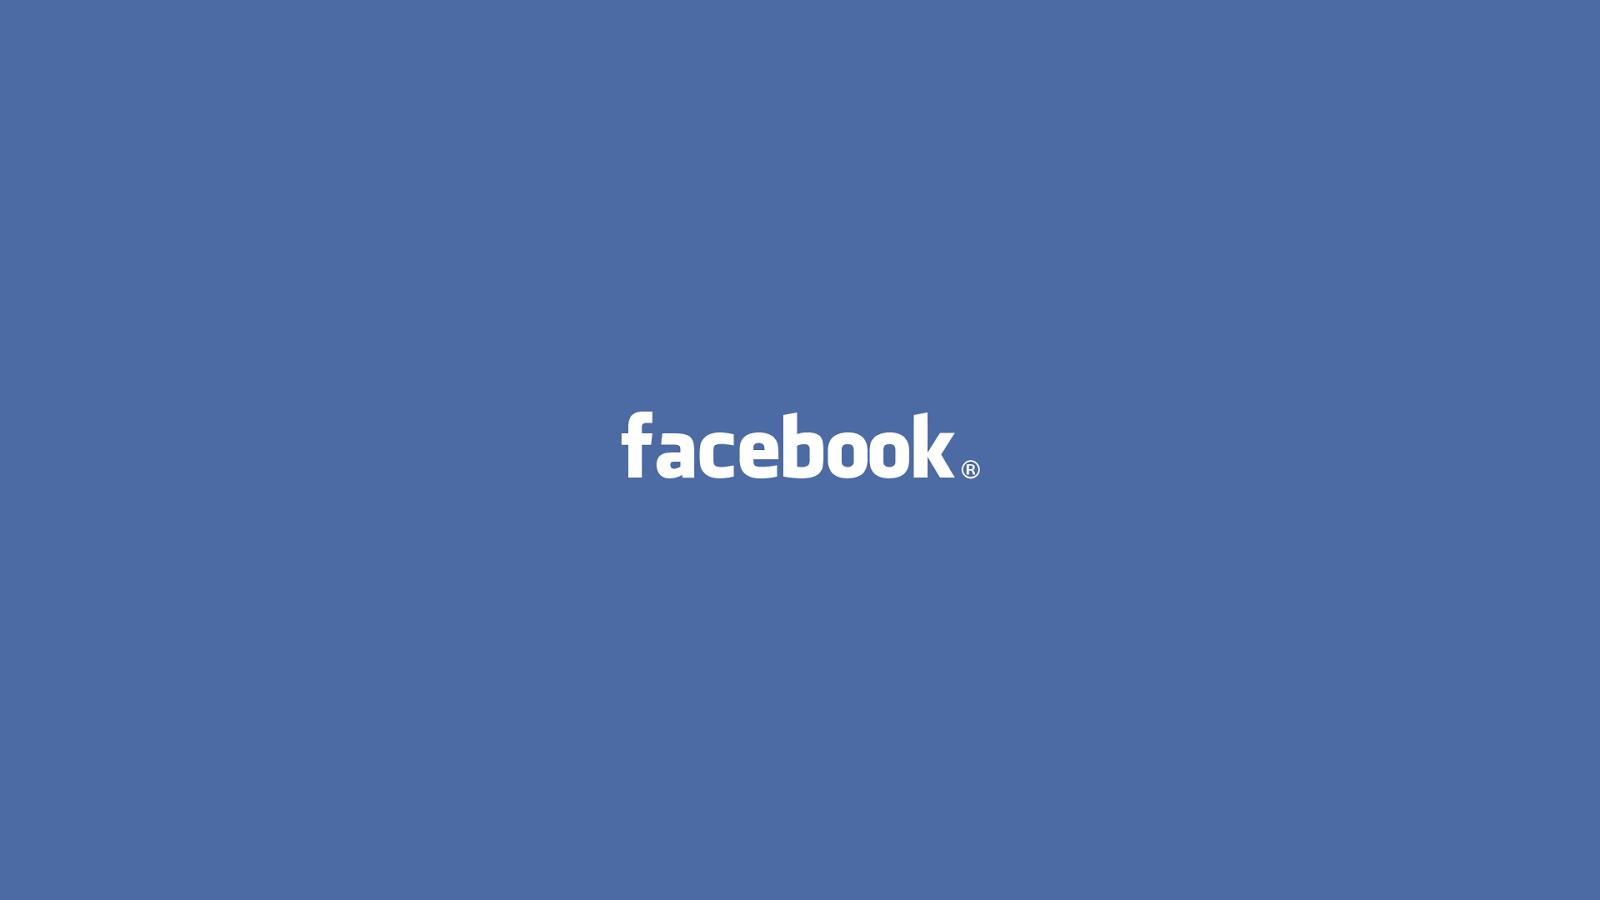 Description Facebook Logo 2013 is a hi res Wallpaper for pc desktops 1600x900